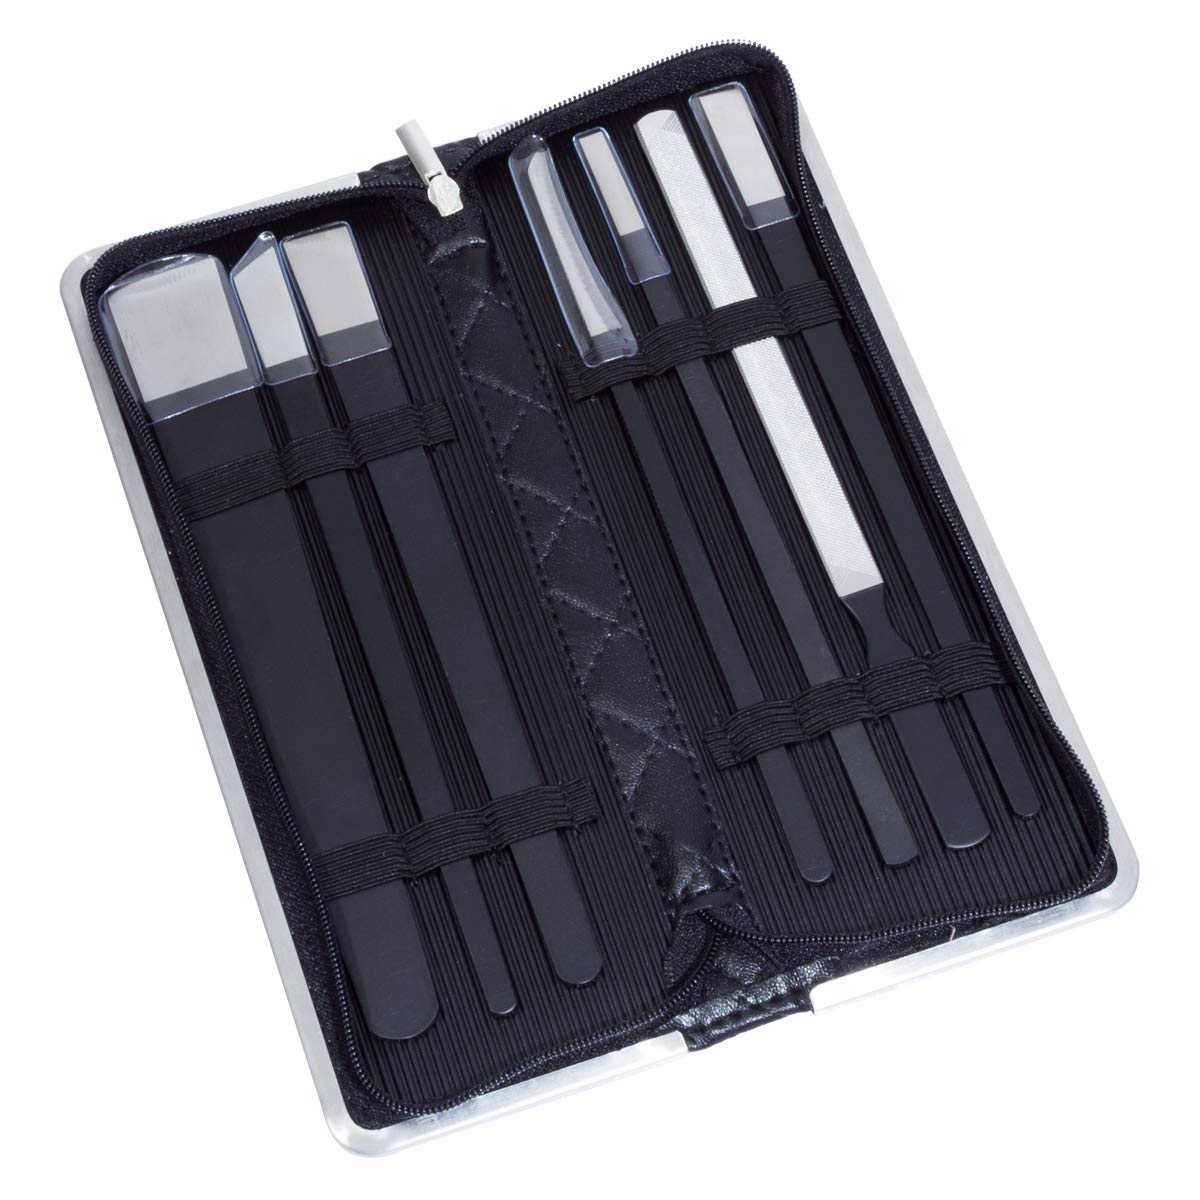 NKTM Professional Pedicure Knife Set - 7 Piece Stainless Steel Nail Care Kit with Leather Travel Case - Black by NKTM